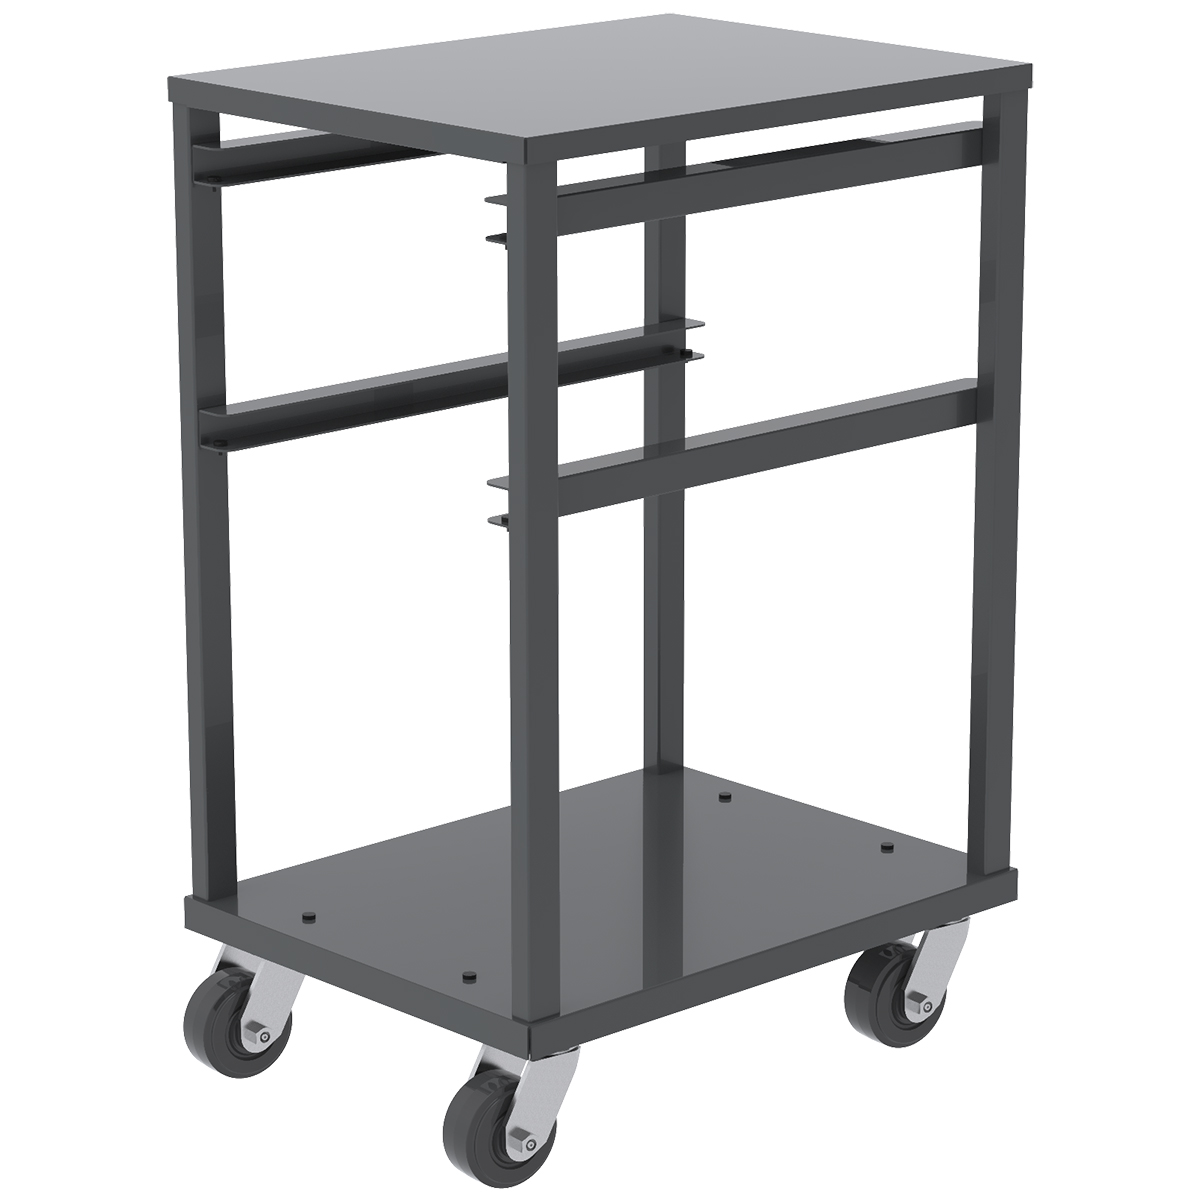 Item DISCONTINUED by Manufacturer.  3 Shelf Rack For Jumbo Lug Tub, 4x2 Mold-on Rubber, Gray.  This item sold in carton quantities of 1.